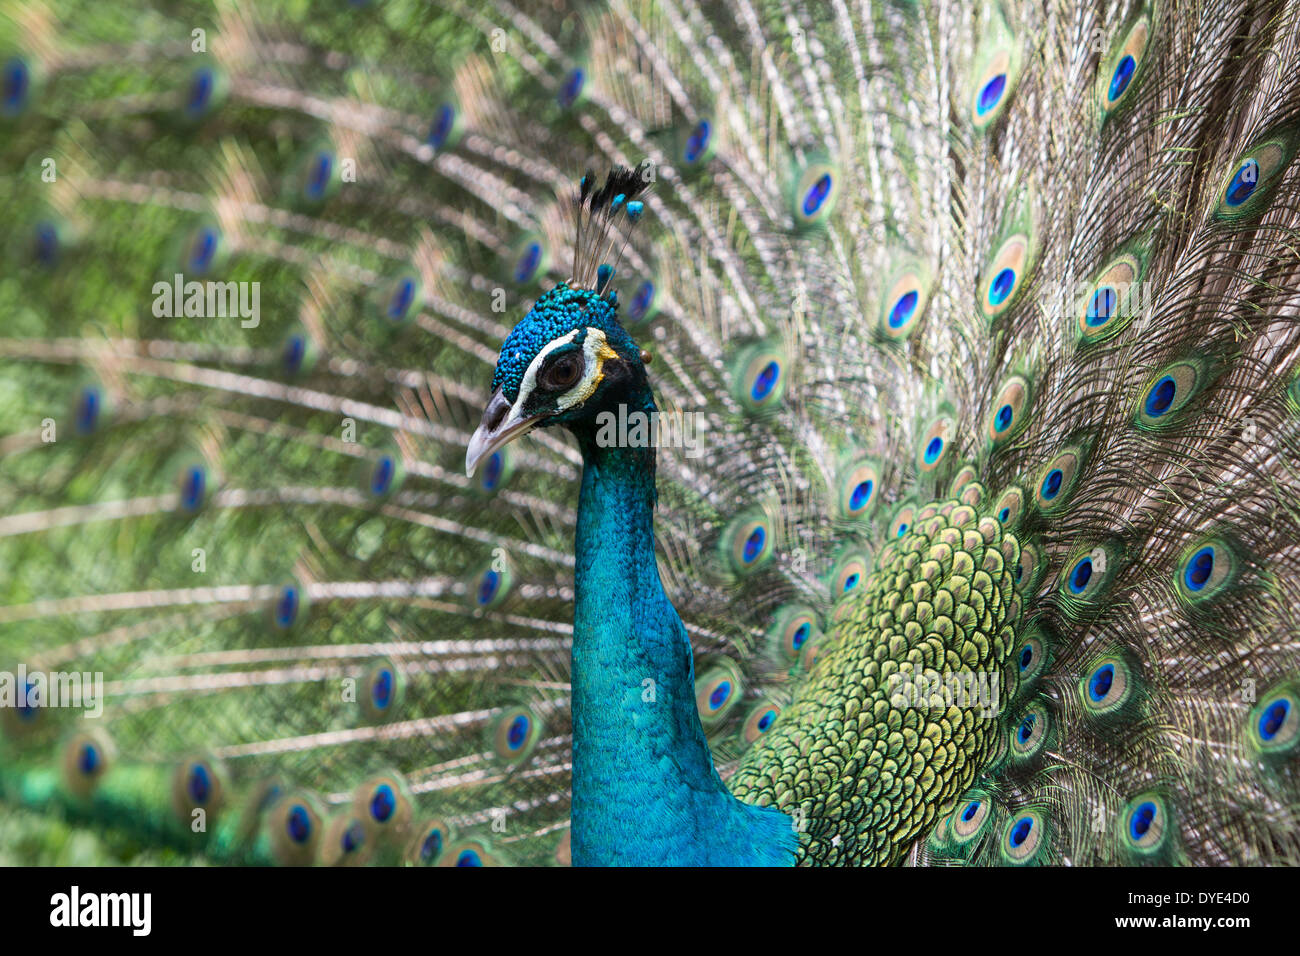 Peafowl, Peacock -flying bird in the genus Pavo of the pheasant family, Phasianidae, best known for the male's extravagant. - Stock Image